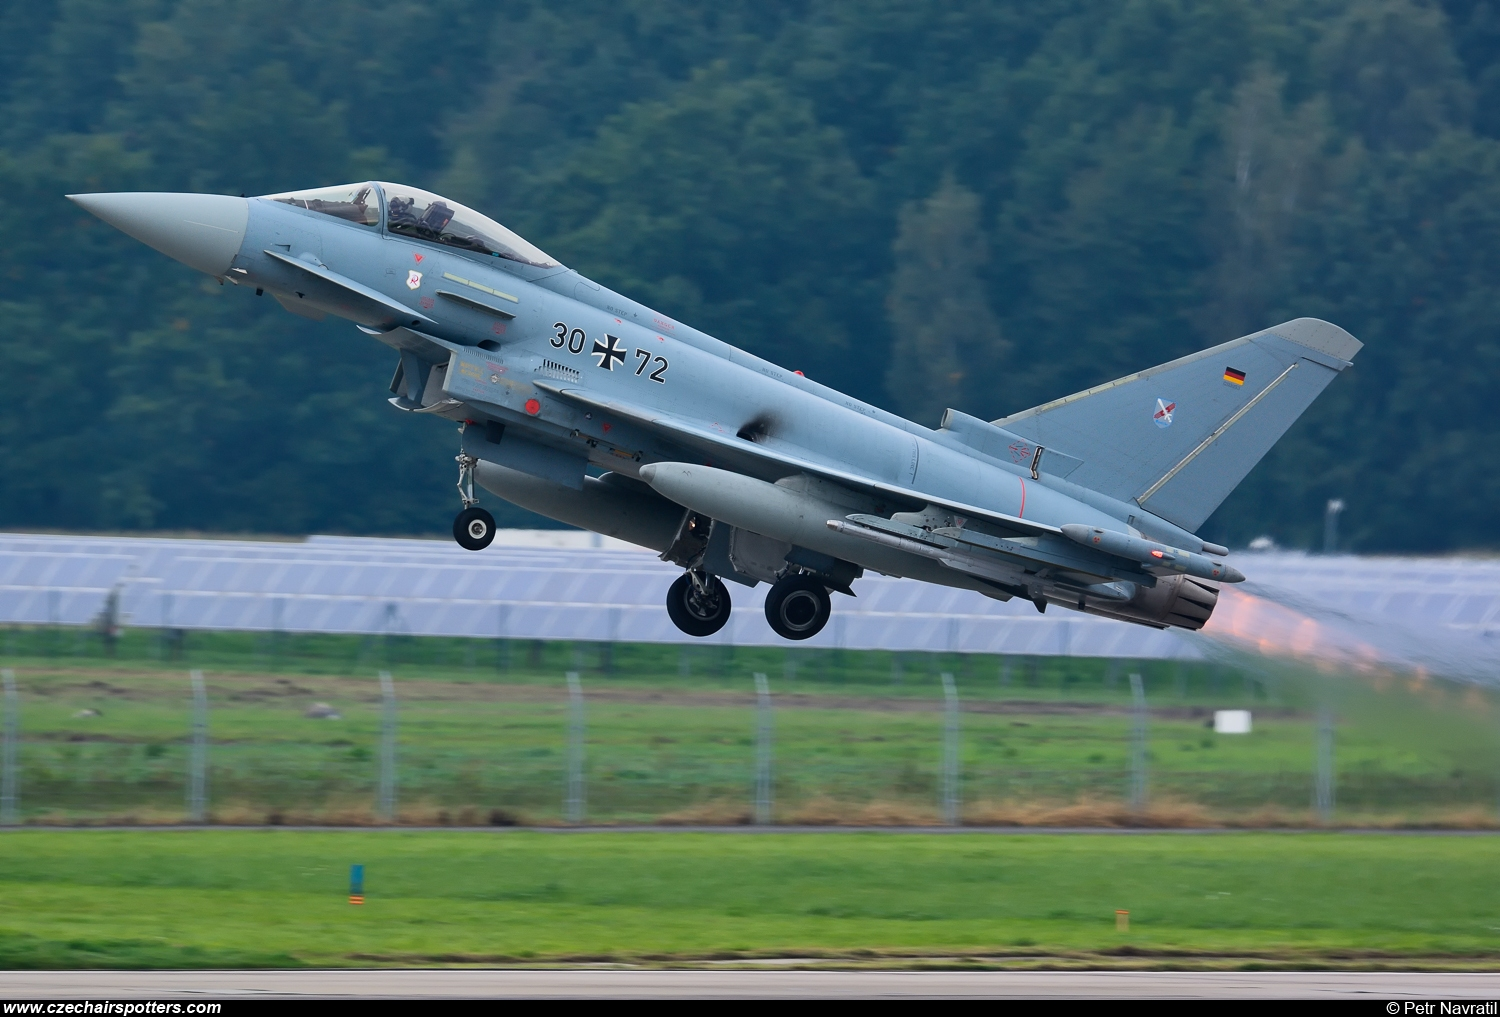 Germany - Air Force – Eurofighter EF-2000 Typhoon S 30+72